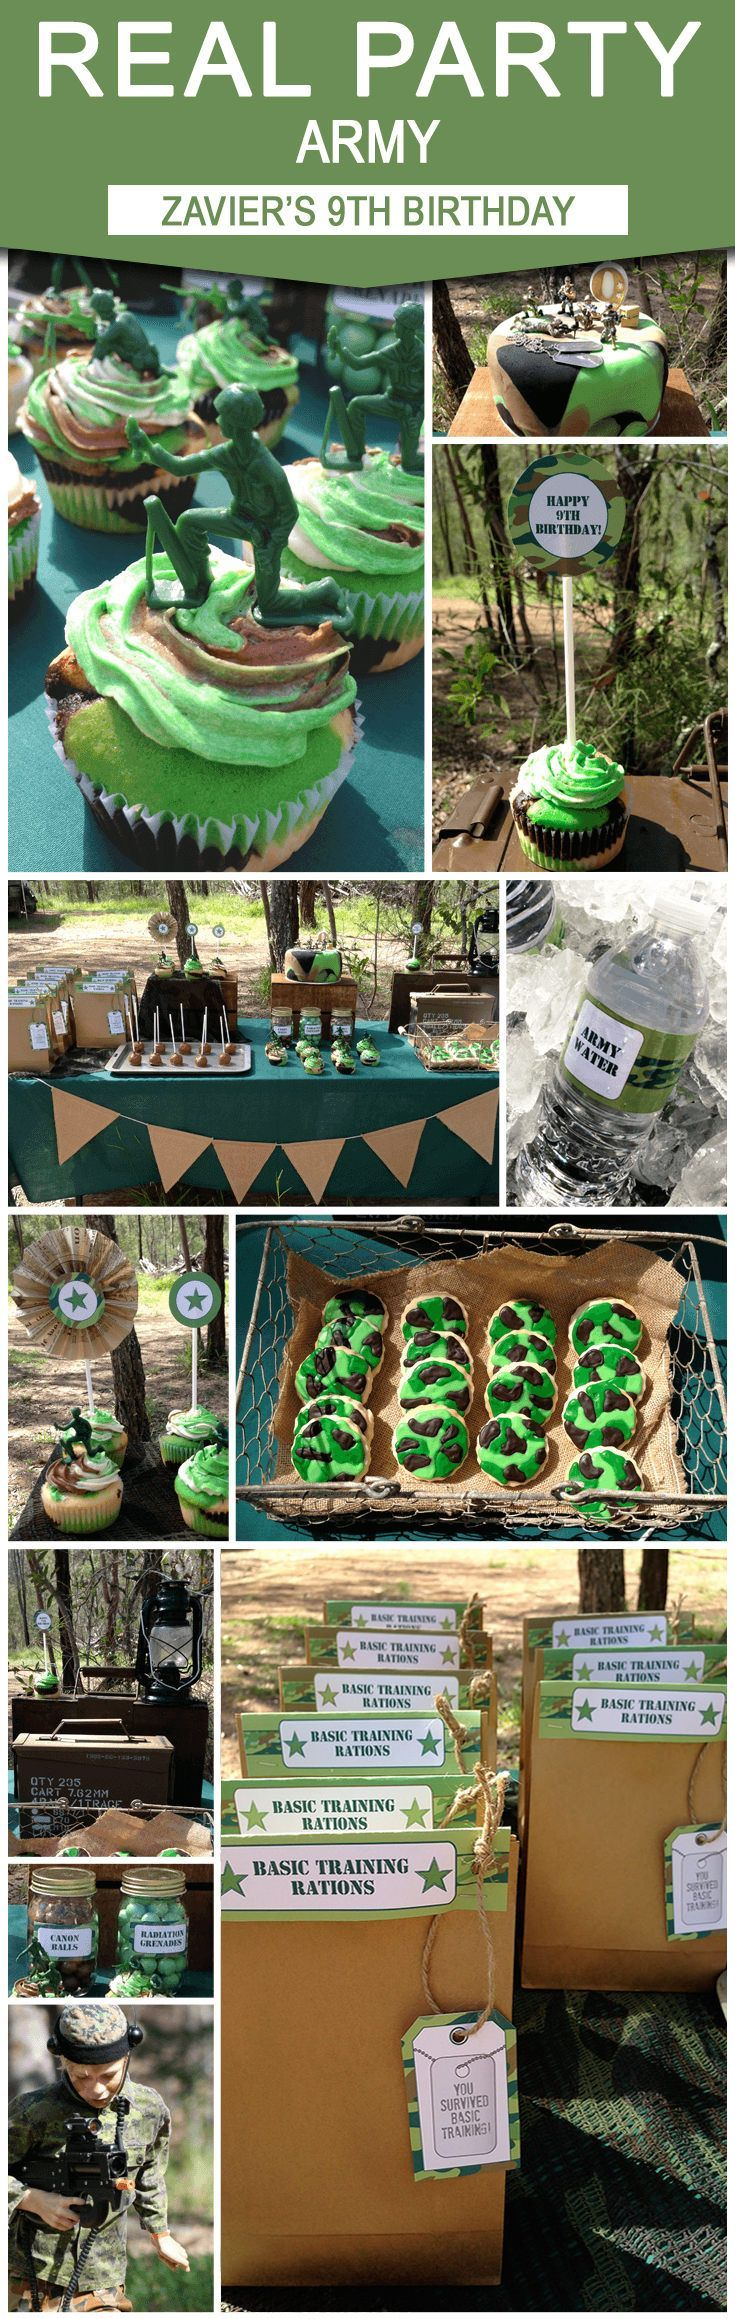 Camo Birthday Party Theme | Zavier's 9th Army Birthday Party from Sarah at Chai Days | Army Party Ideas | Decorated with http://SIMONEmadeit.com DIY Printable Templates